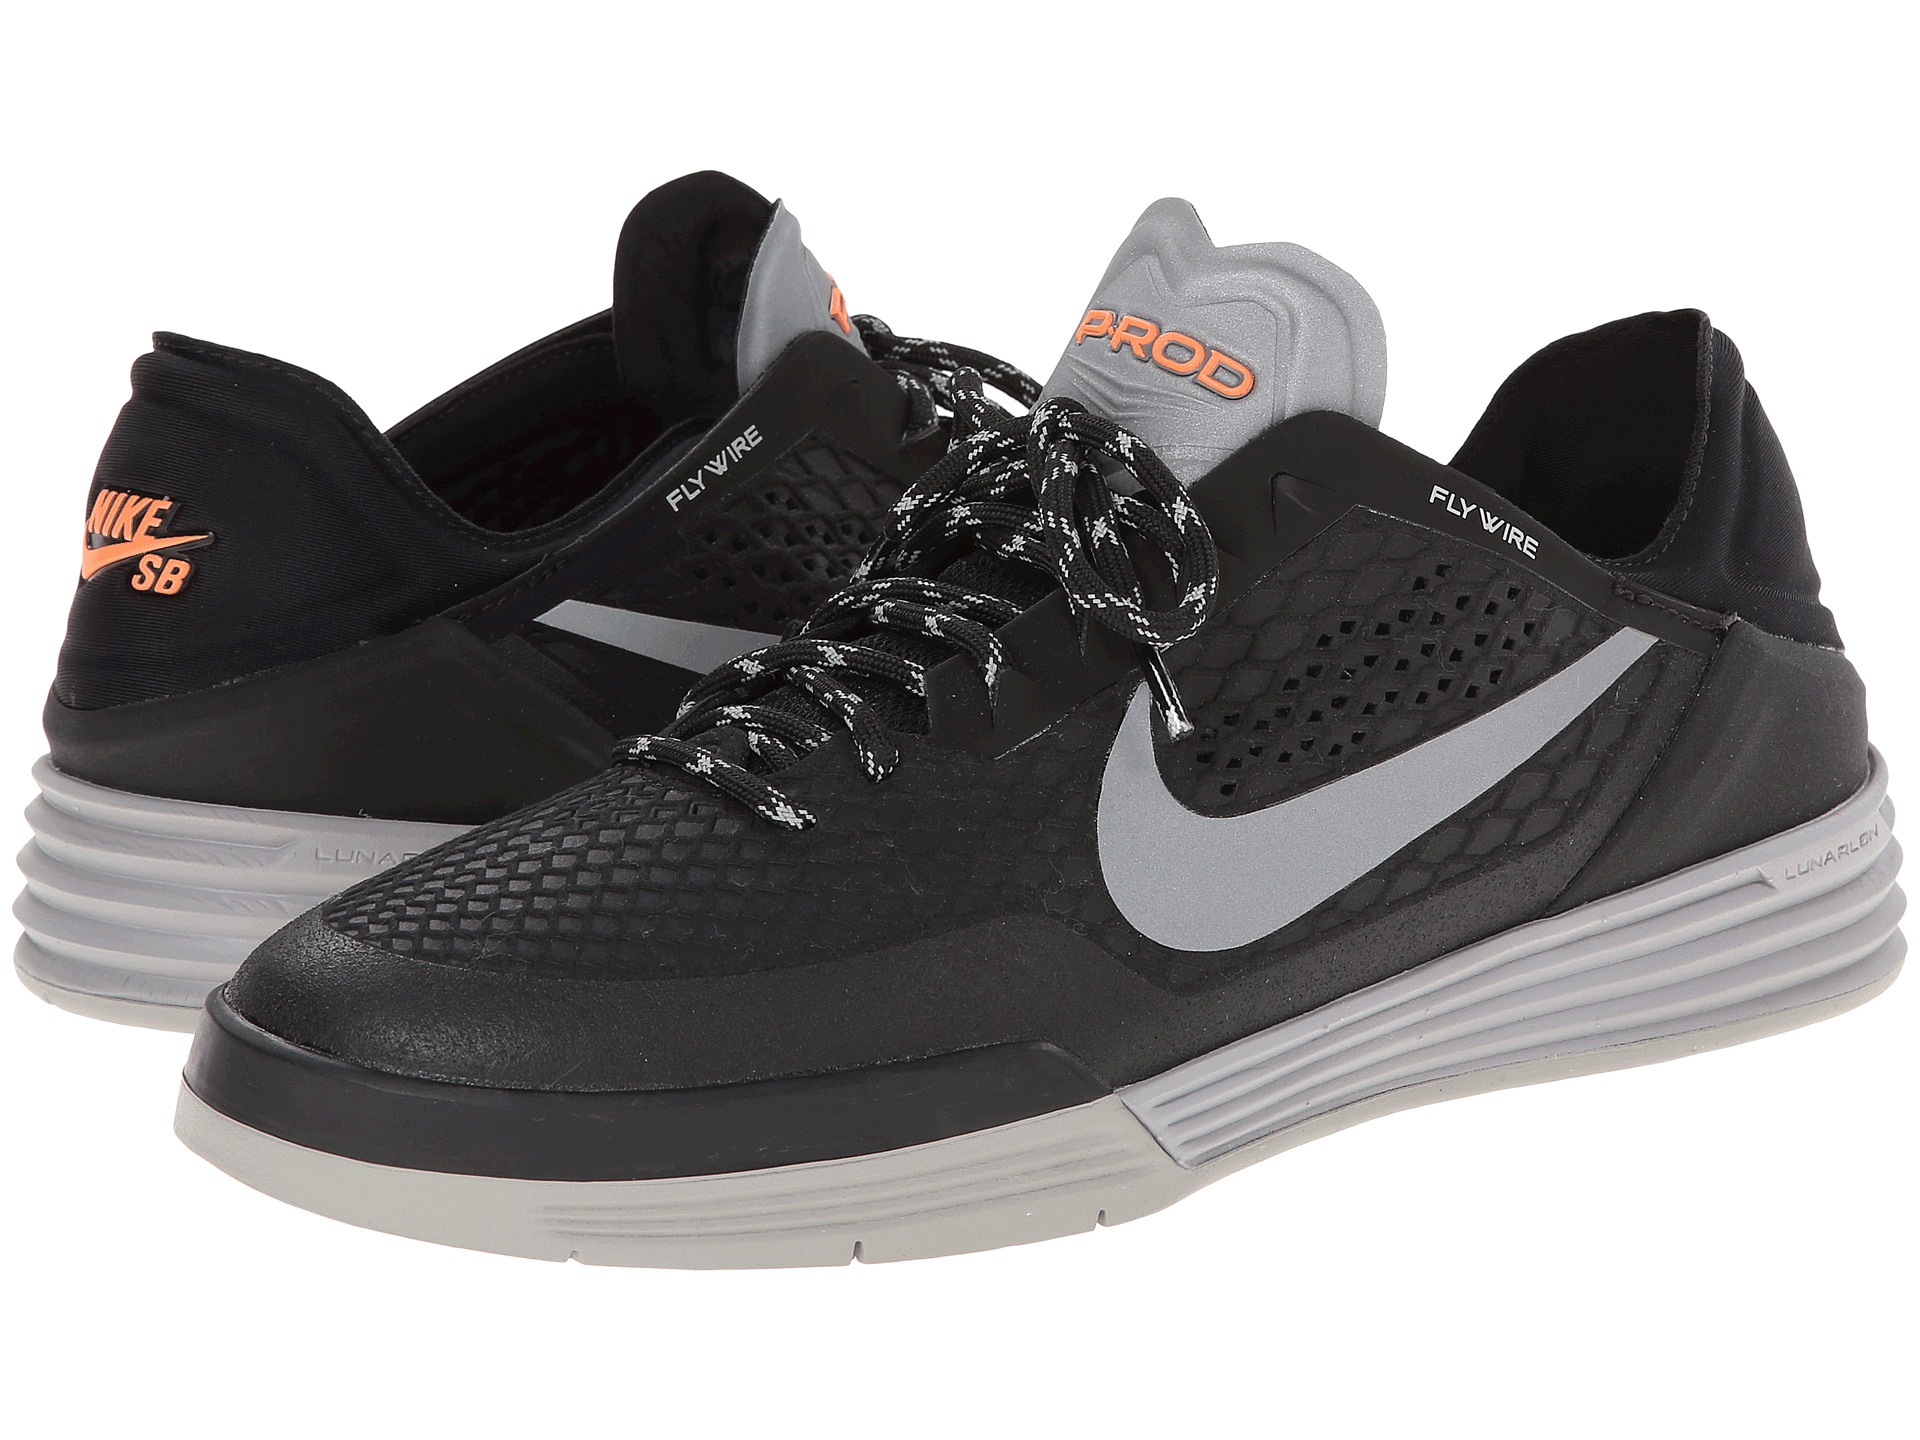 nike sb paul rodriguez 8 shield shipped free at zappos. Black Bedroom Furniture Sets. Home Design Ideas